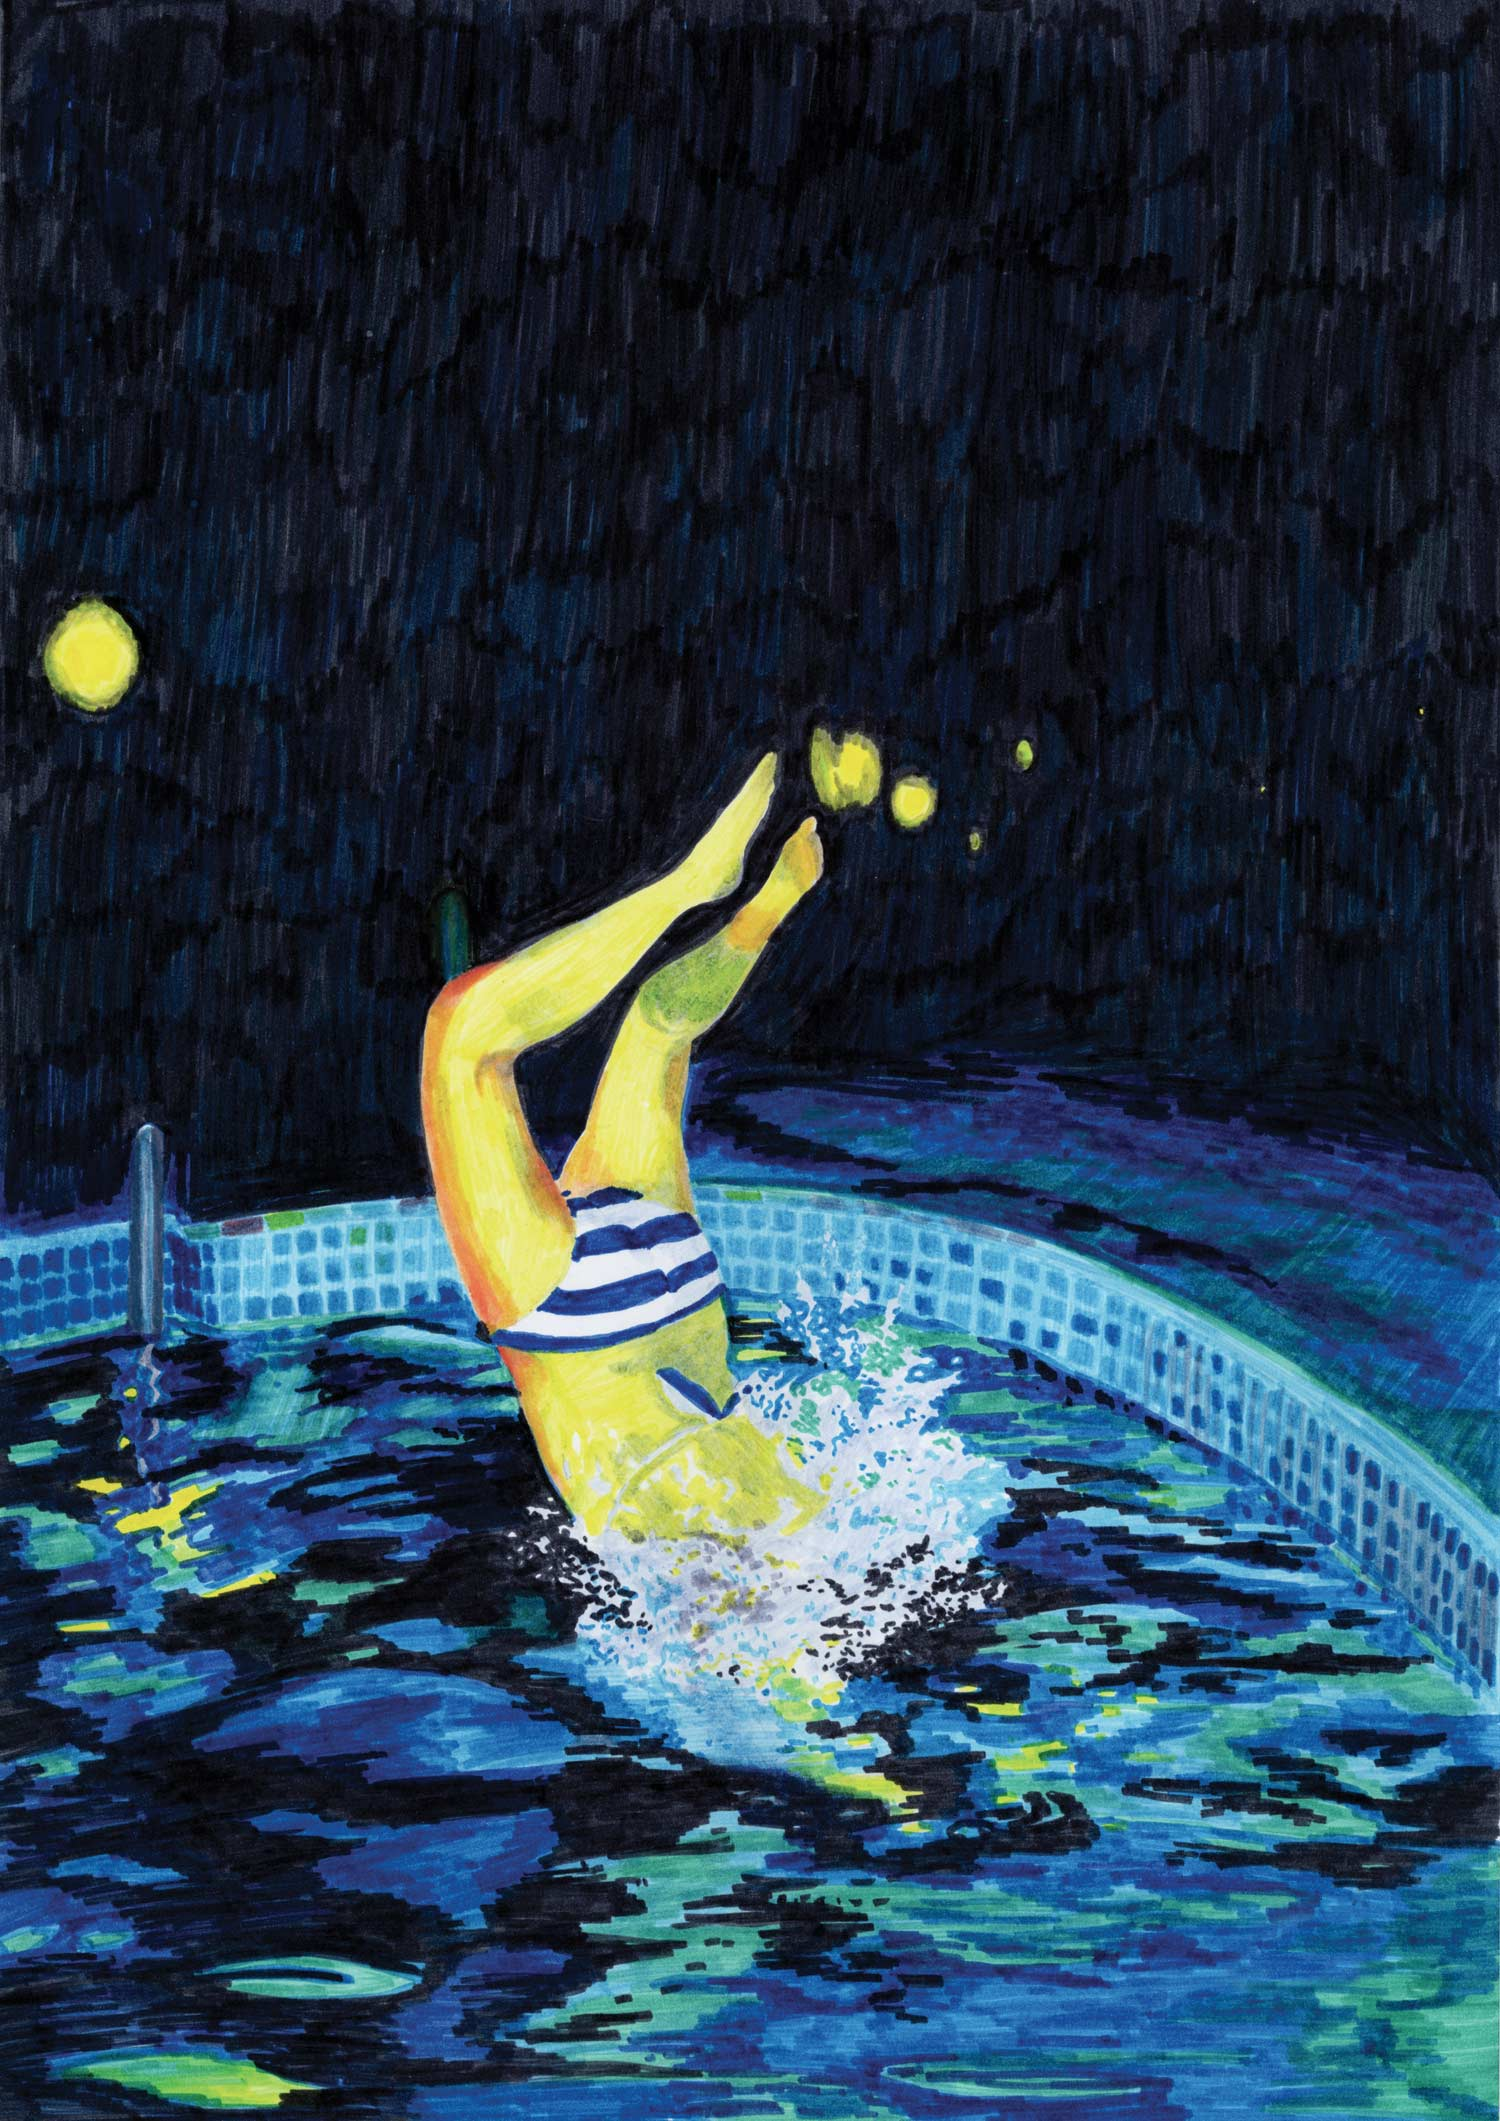 eau_plongeon_nuit_feutre_illustration_piscine_molesti